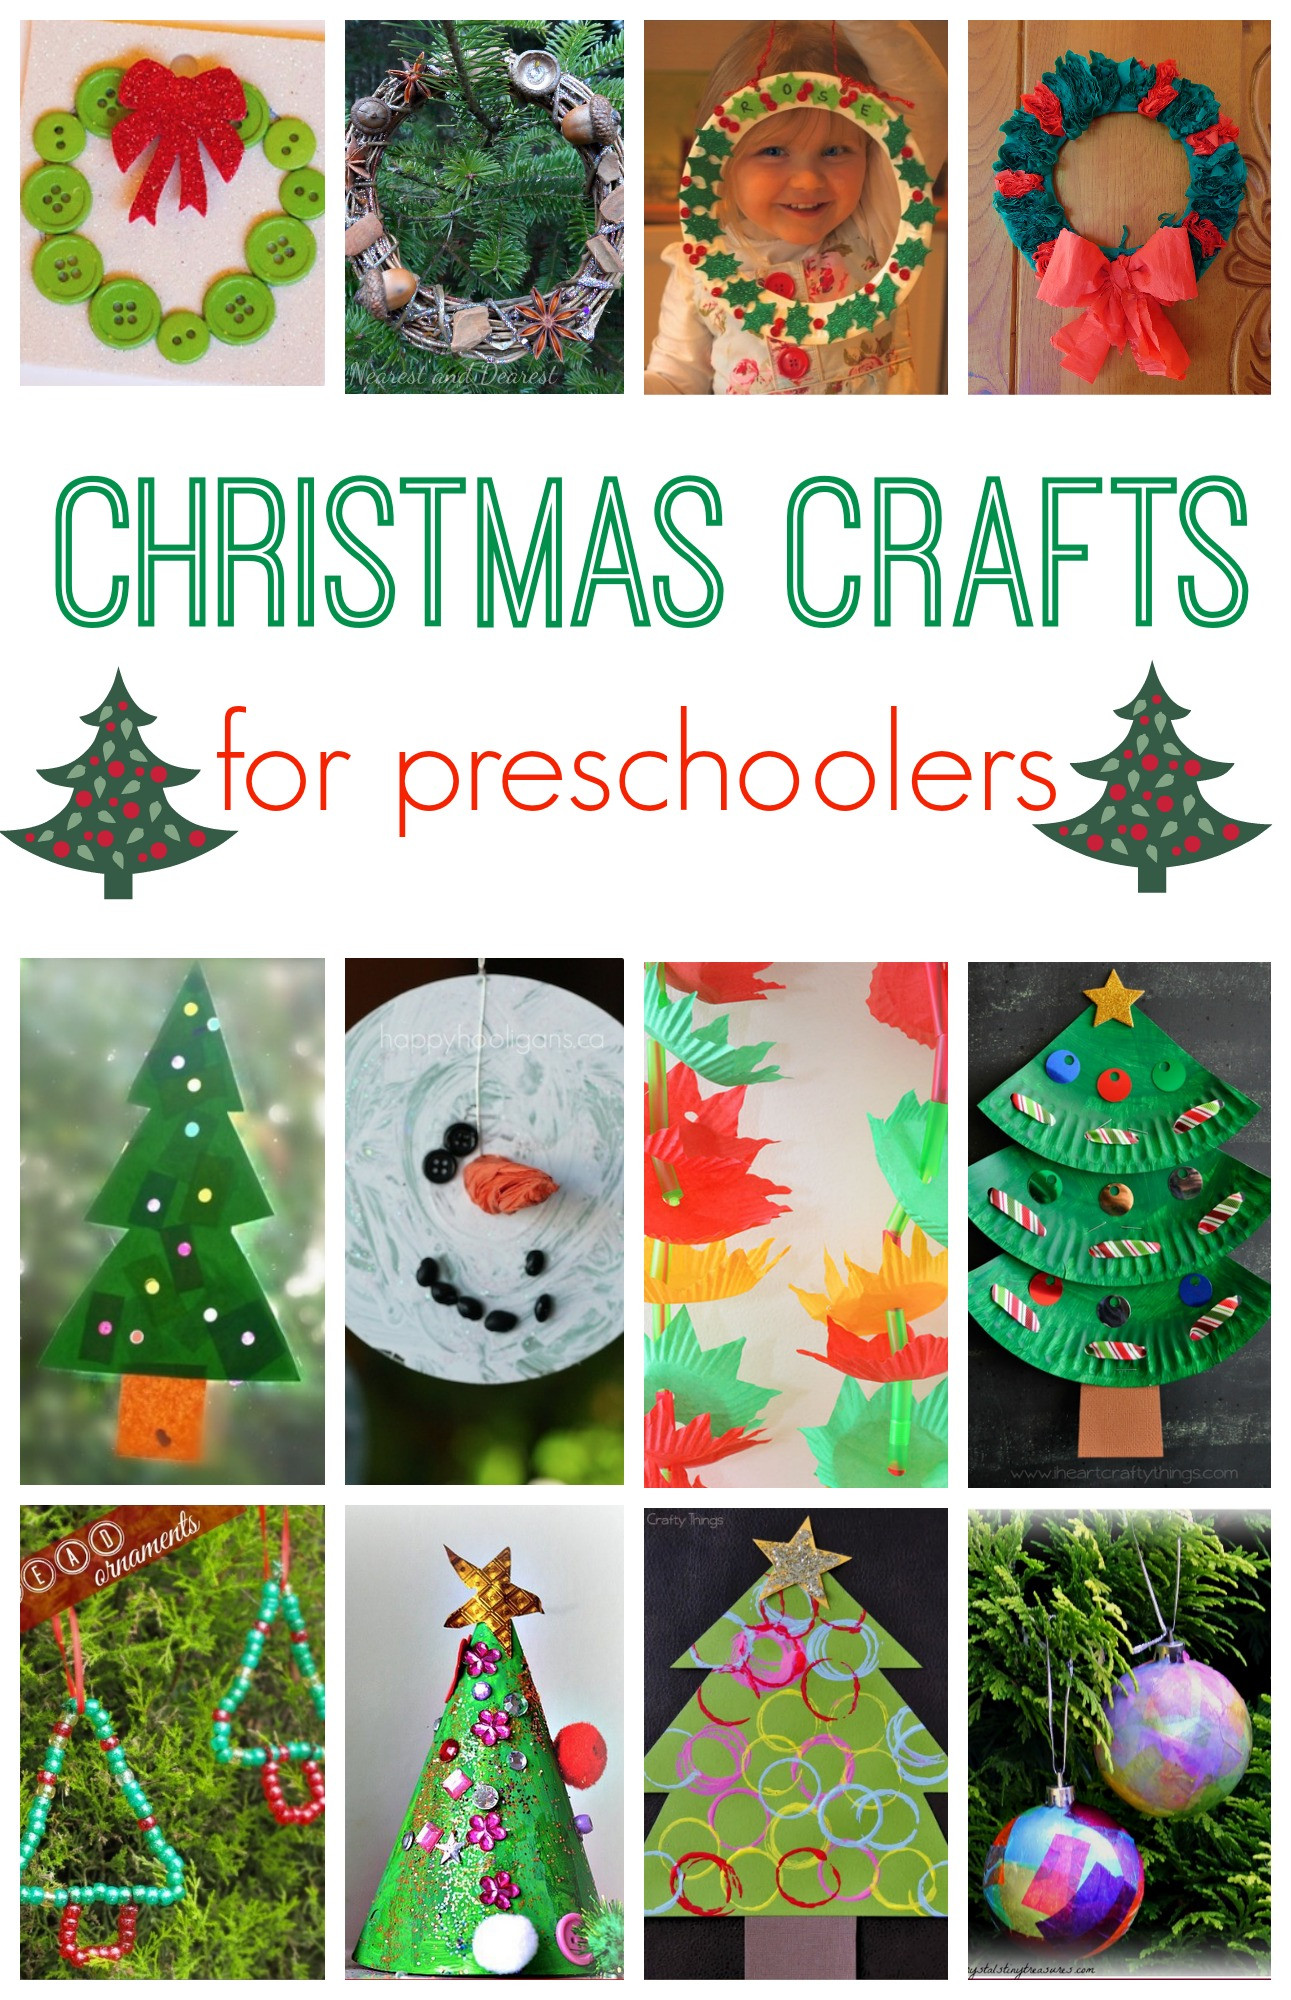 Best ideas about Christmas Projects For Preschoolers . Save or Pin 101 Christmas Crafts for Kids Here e the Girls Now.